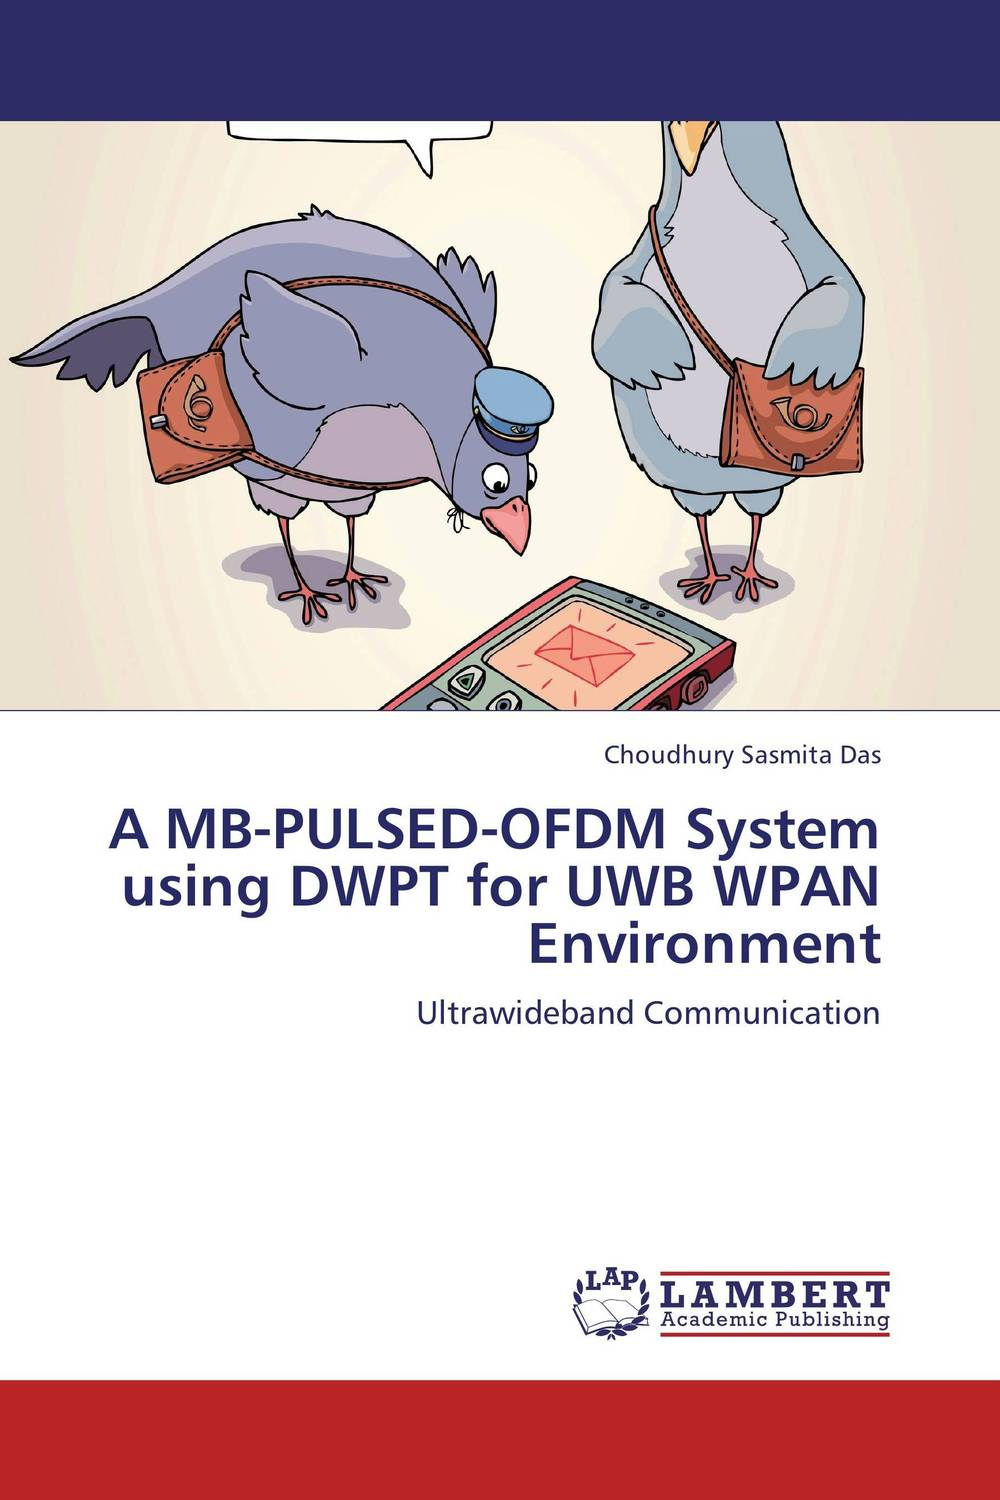 A MB-PULSED-OFDM System using DWPT for UWB WPAN Environment application of pulsed ultra violet light in food processing